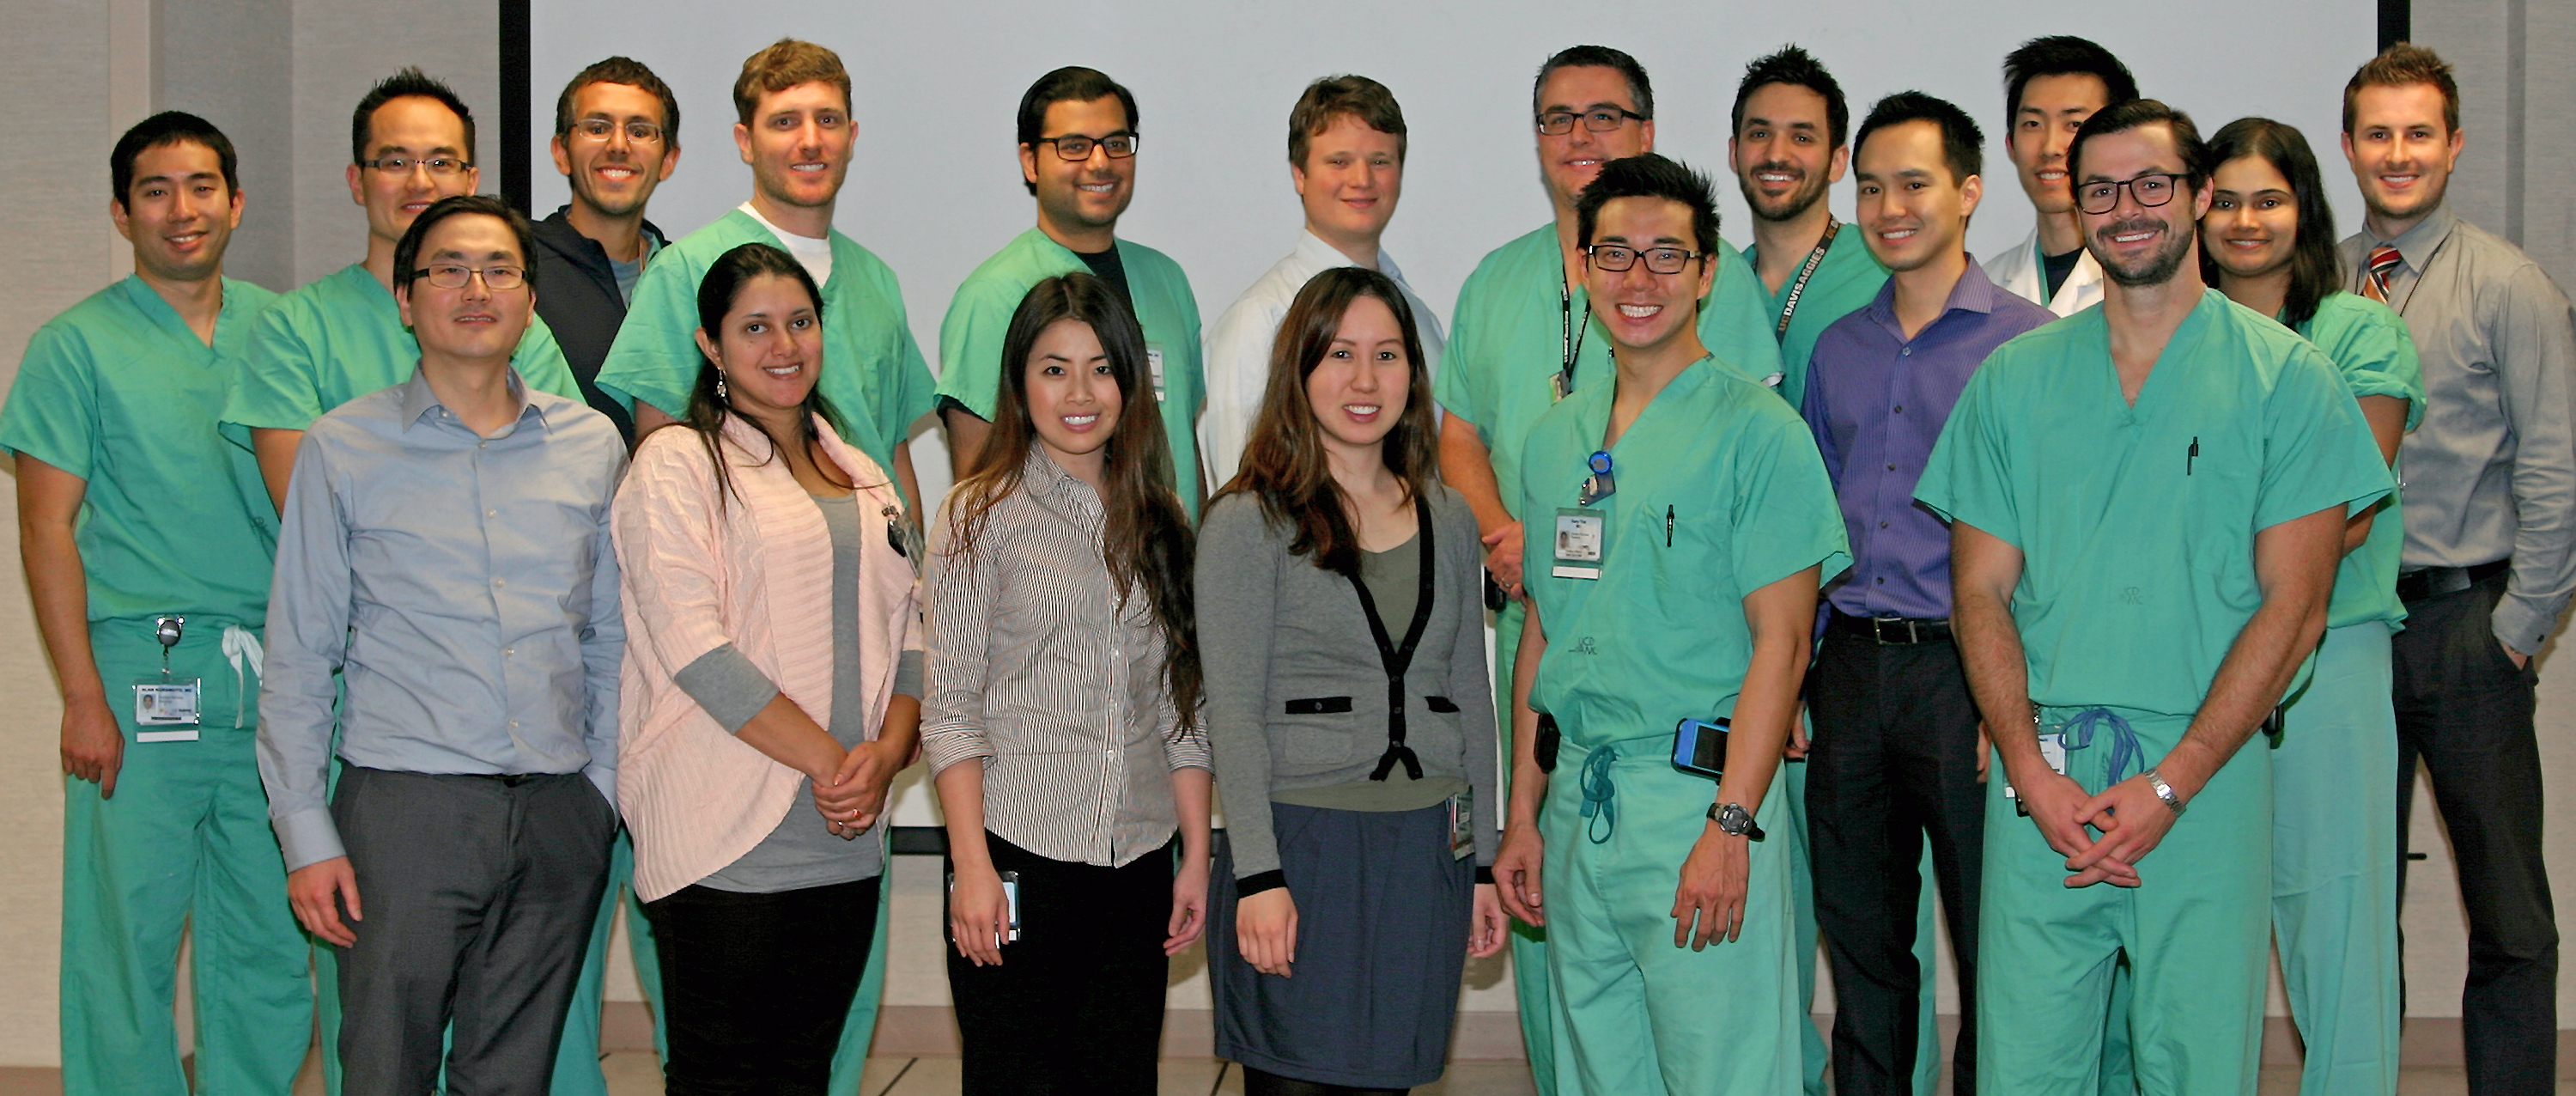 meet the residents in radiology 2013